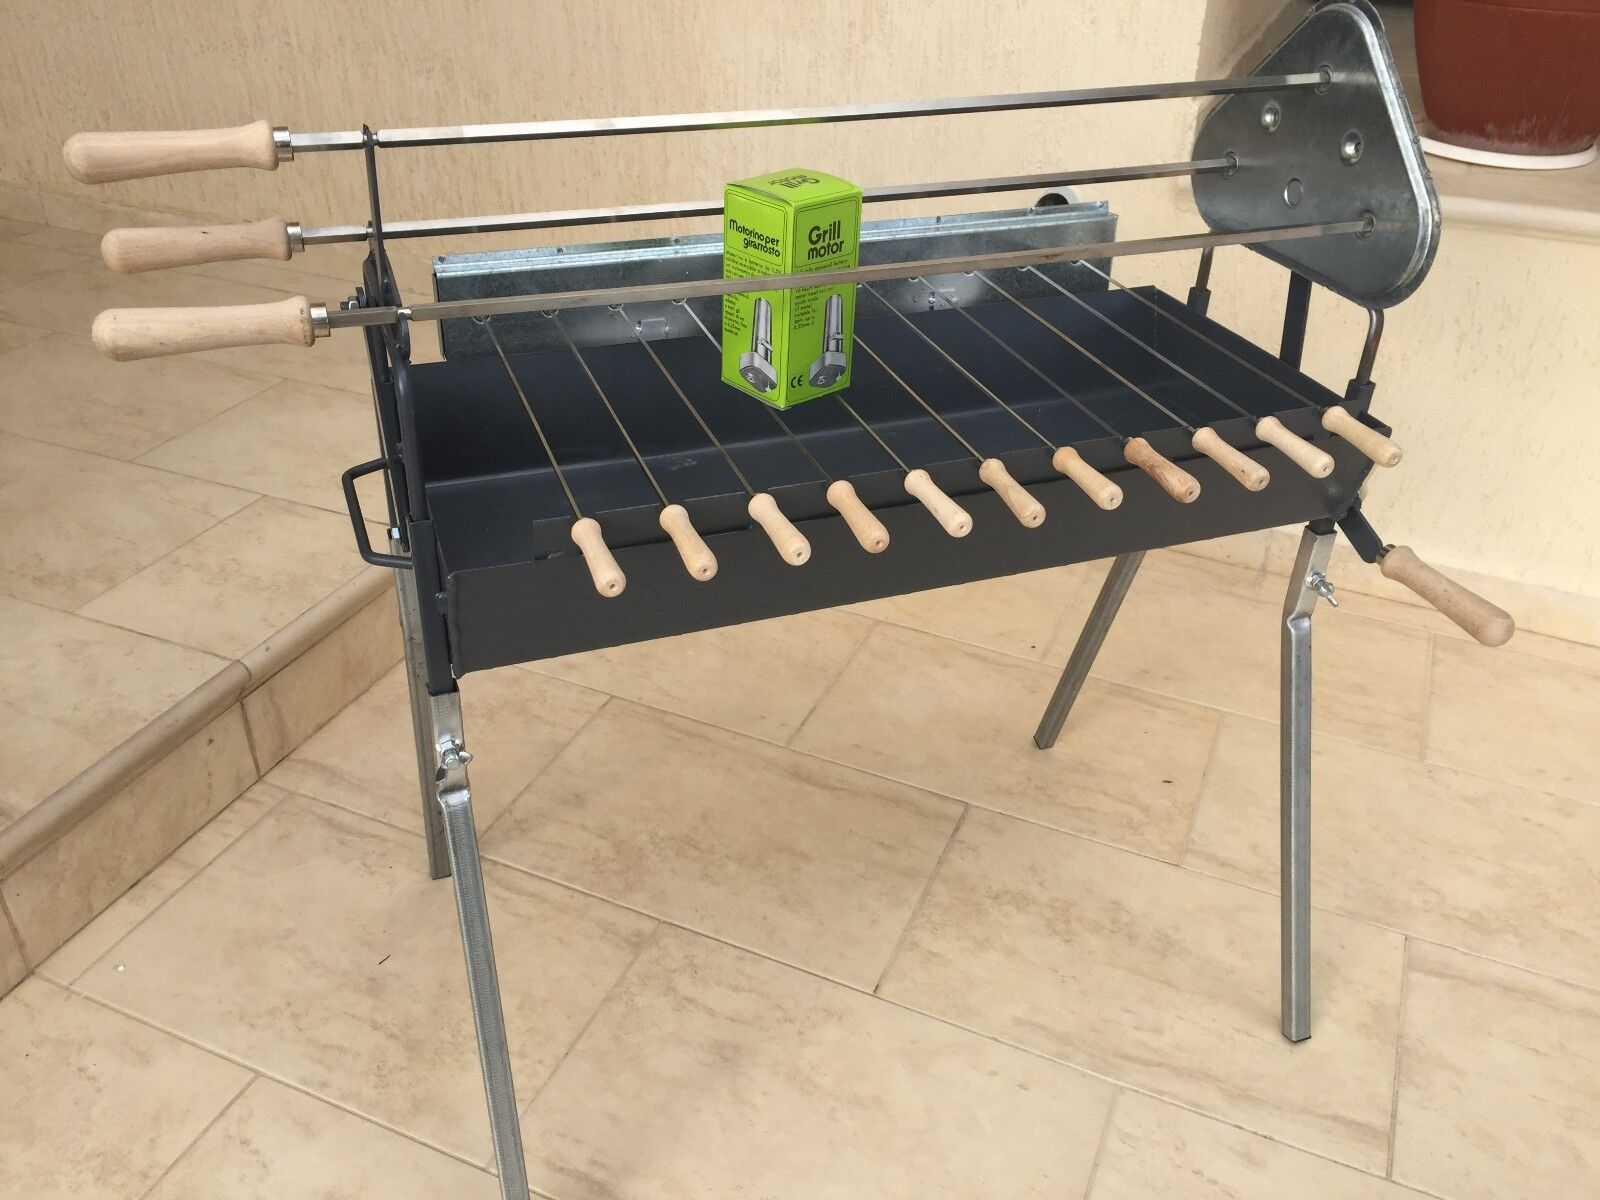 Rotisserie grilling on a charcoal grill is best accomplished when cooking with the indirect heat method although direct heat can be used for certain foods